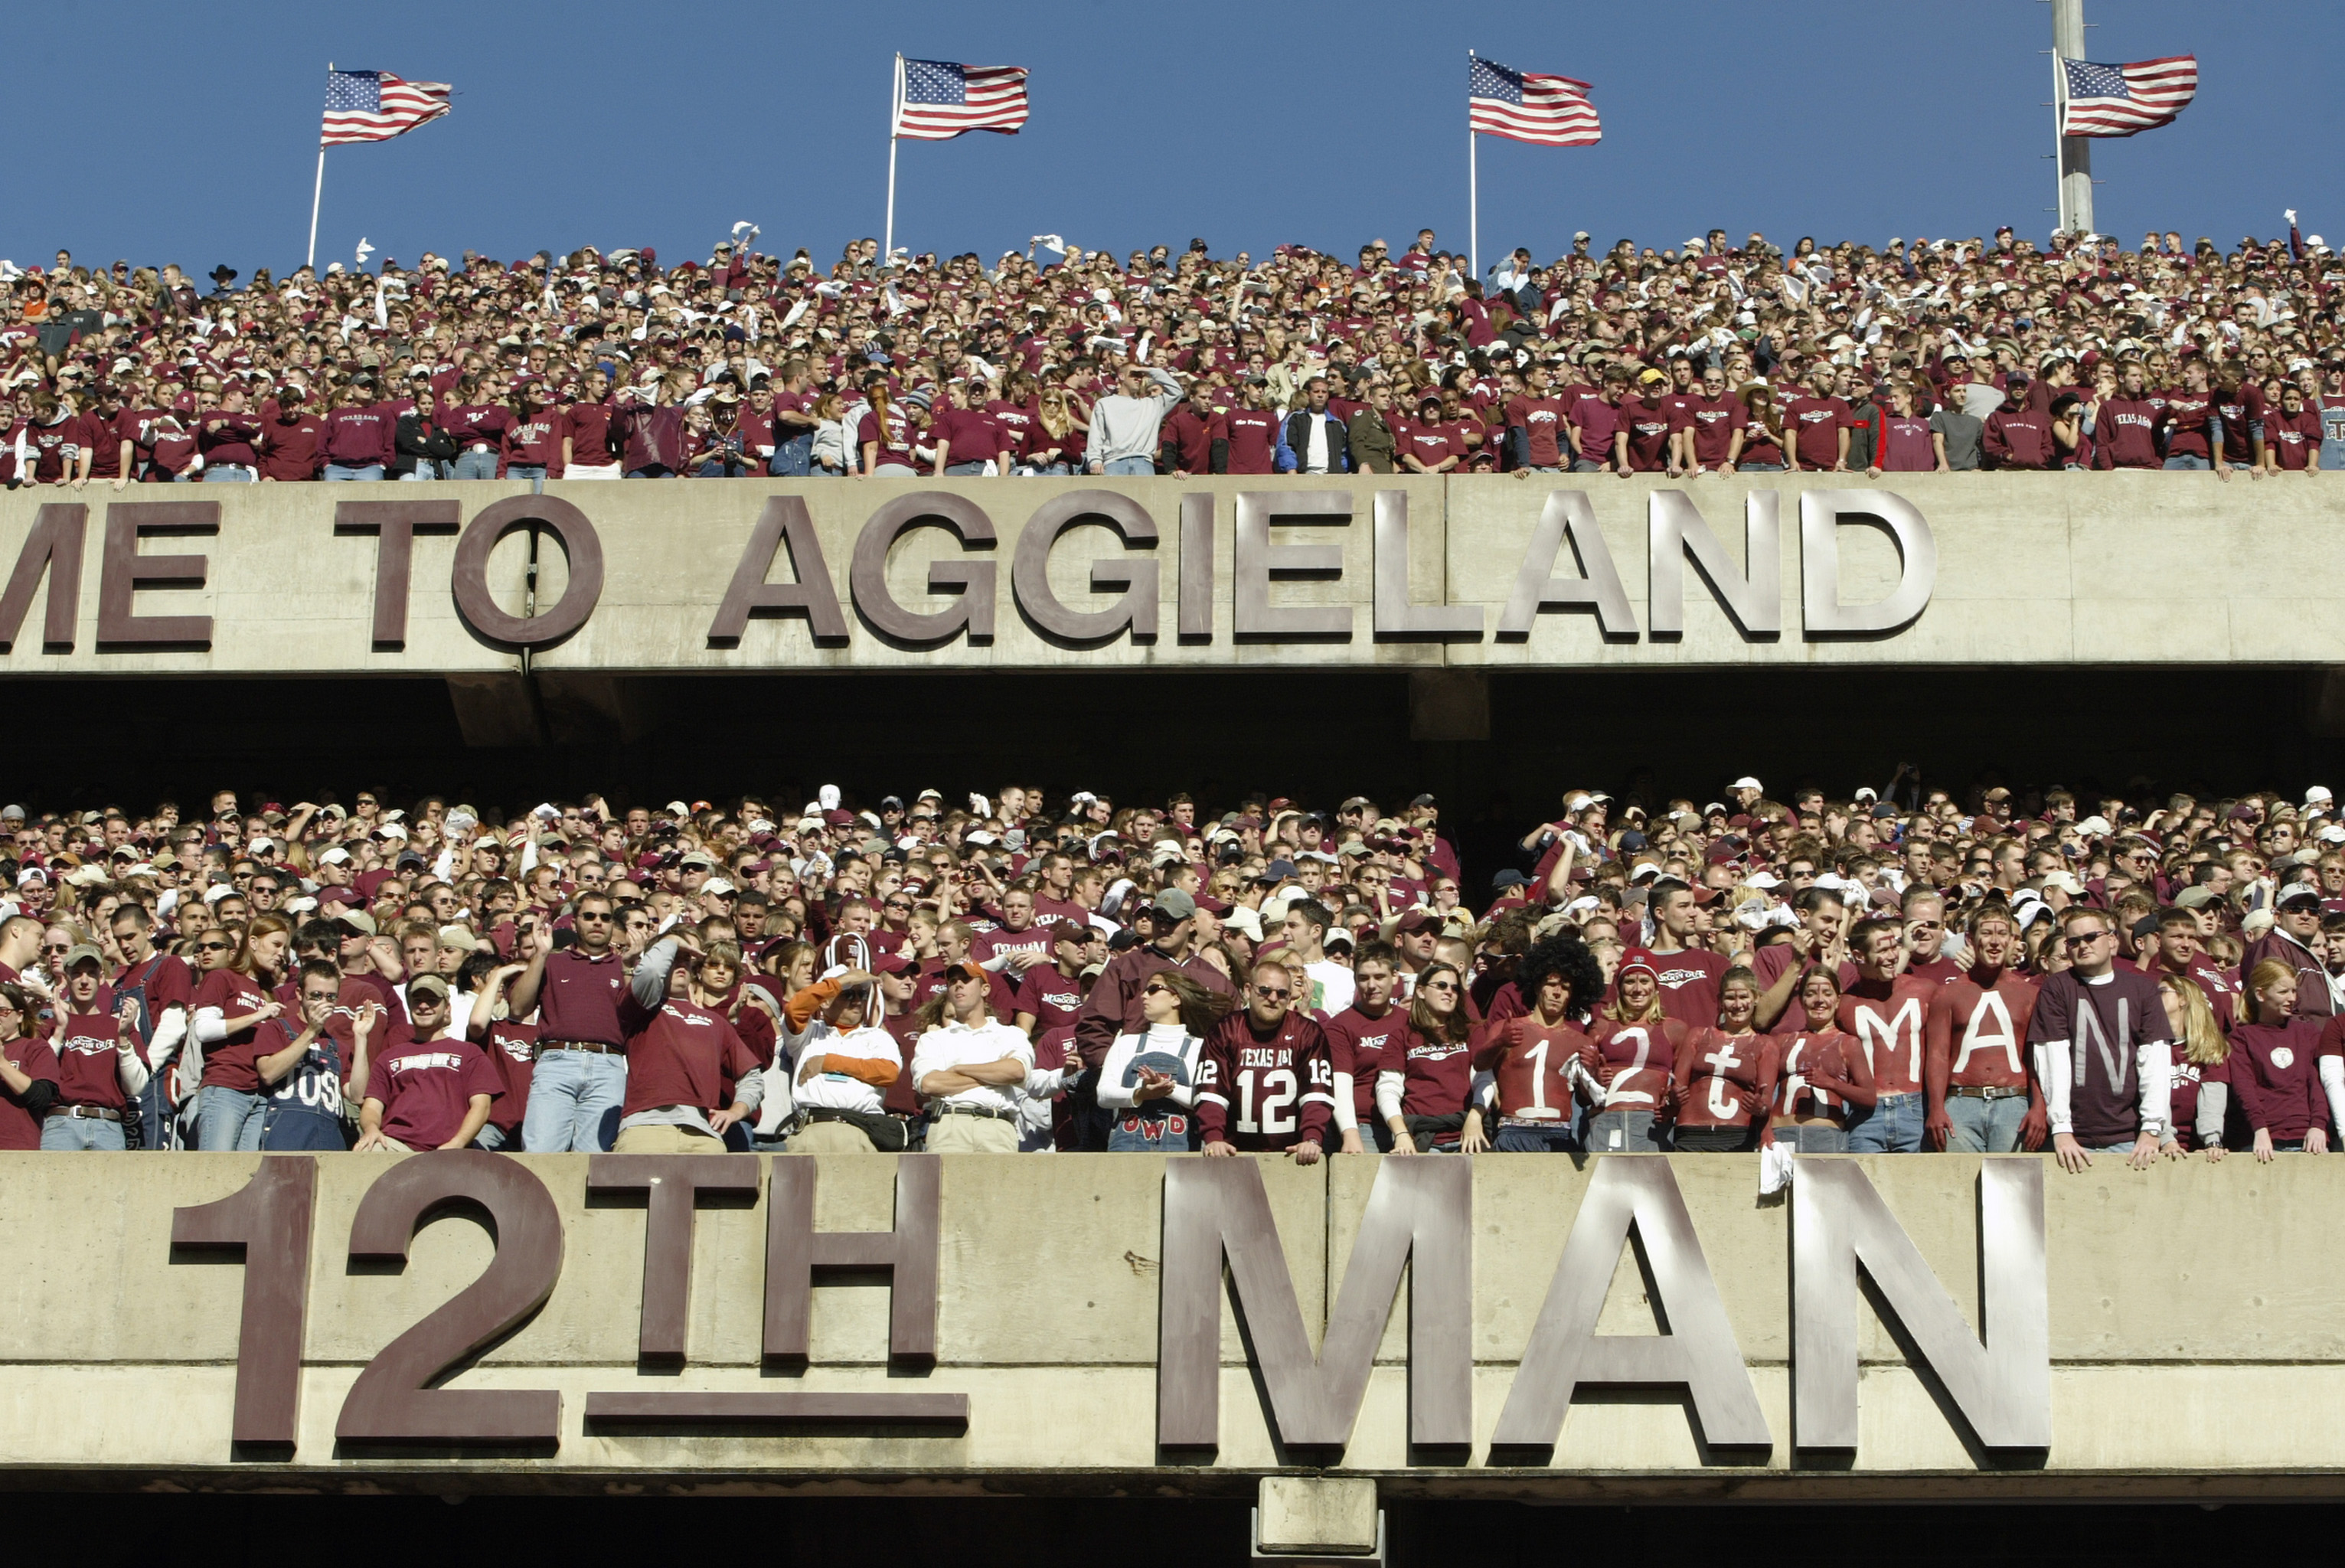 Texas A&M: Home of the 12th Man